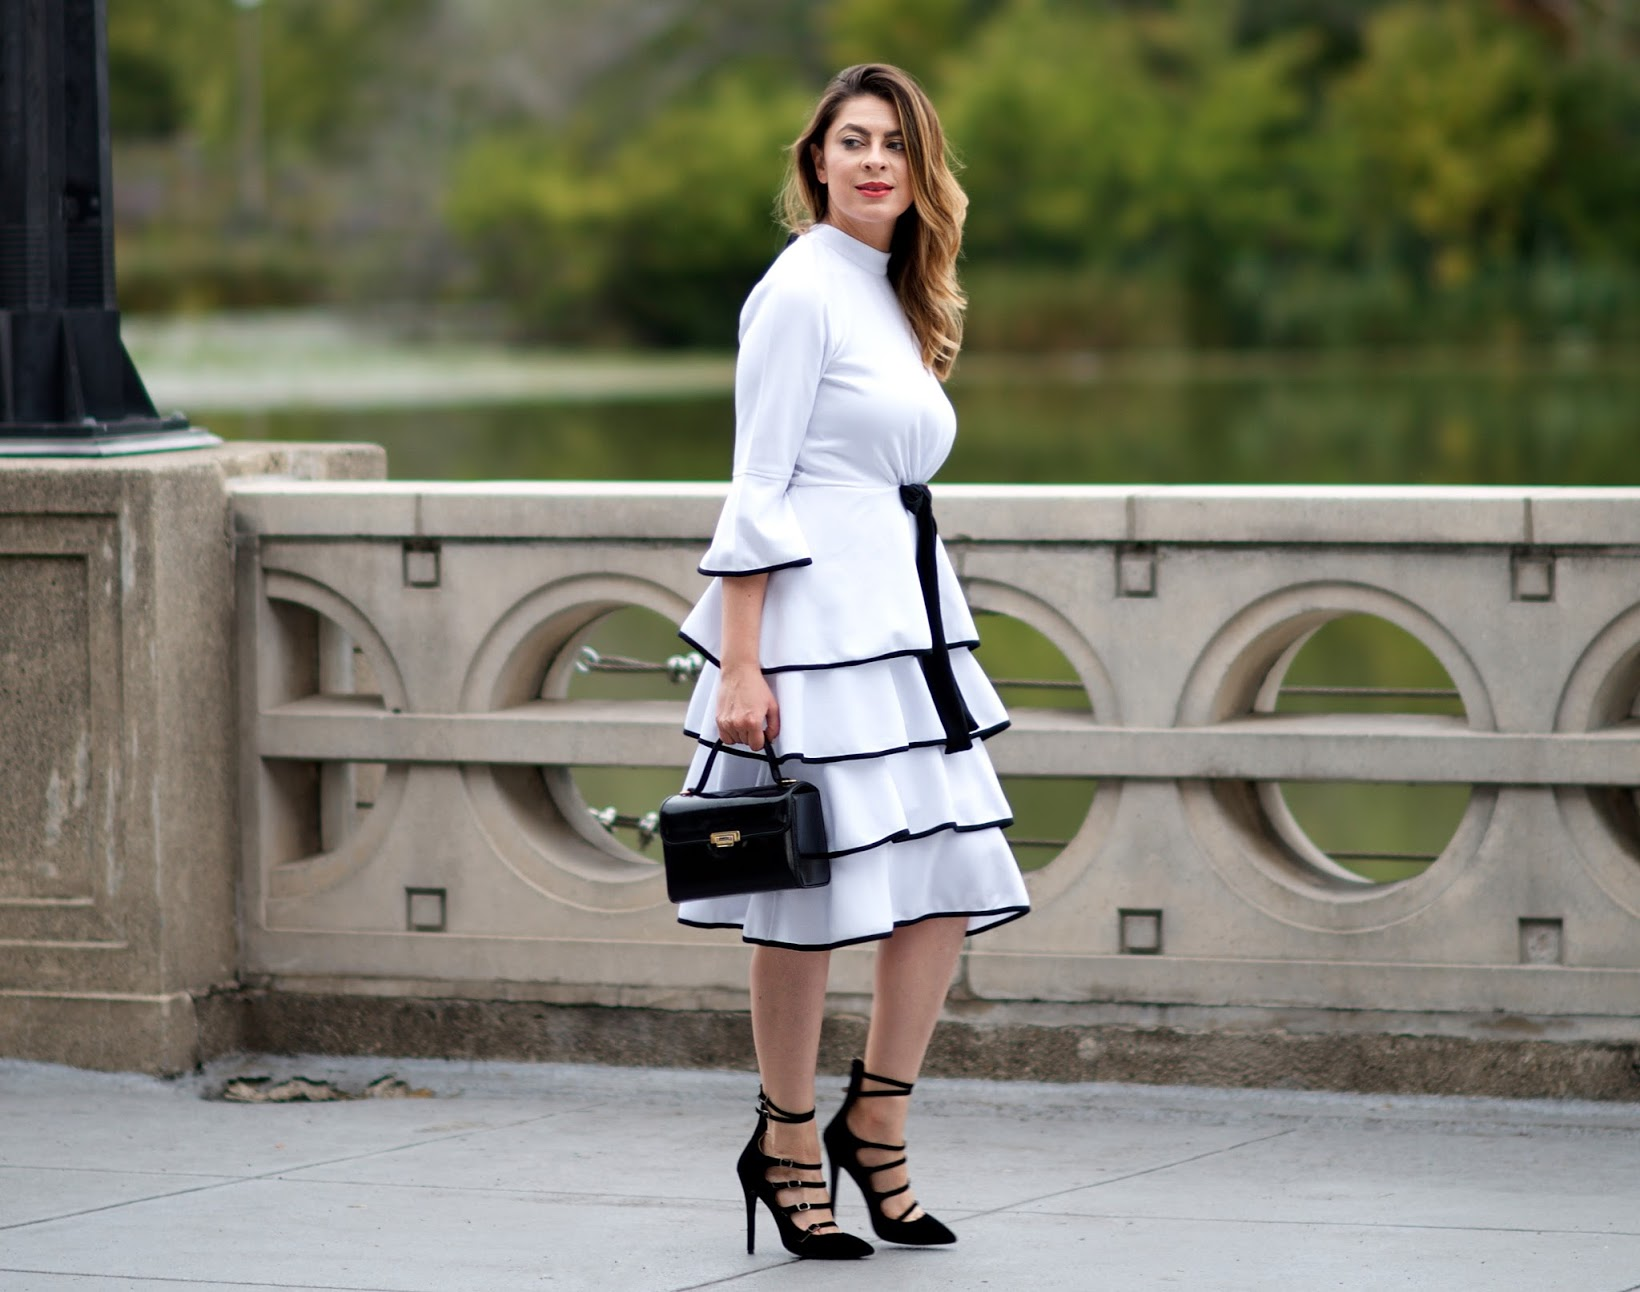 Black & white fit and flare dresses